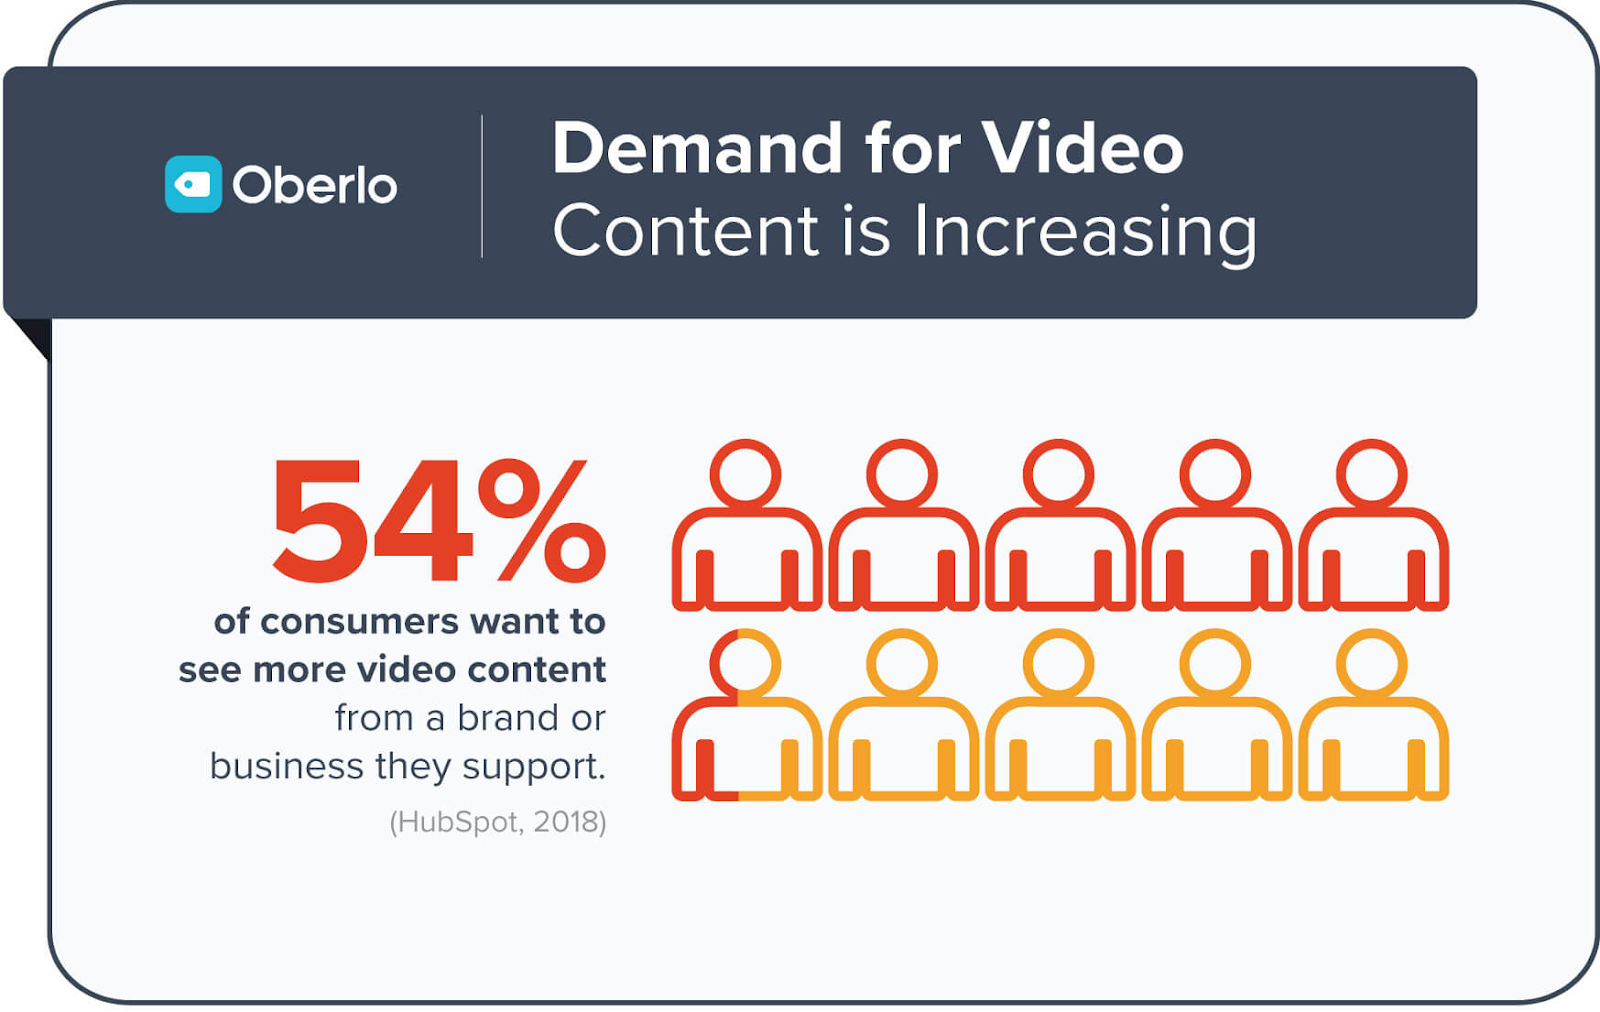 Demand for video content is increasing: 54% of consumers want to see more video content.